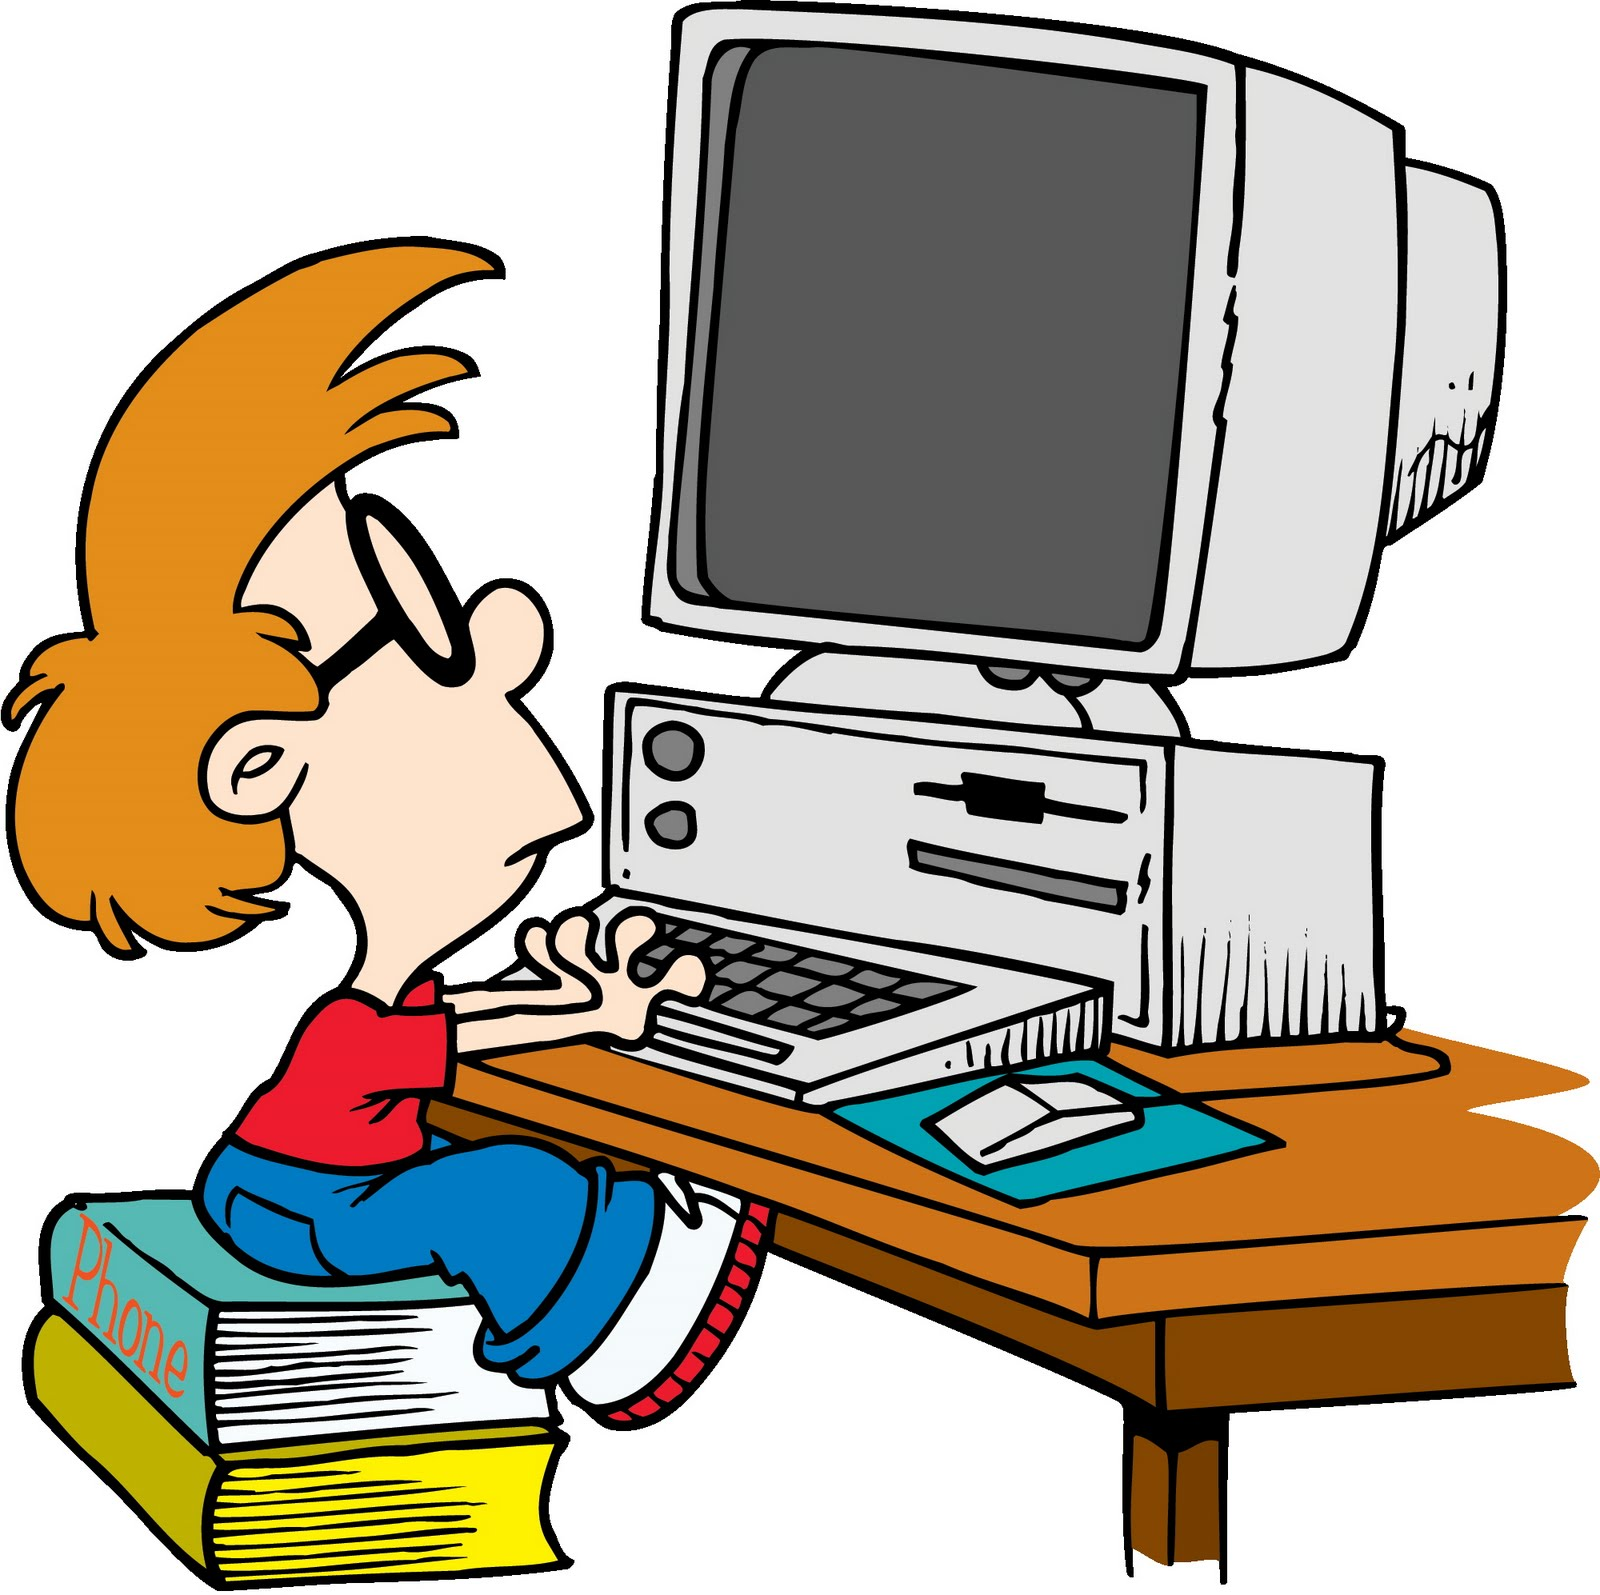 Bullying clipart computer. Paul s english adventure